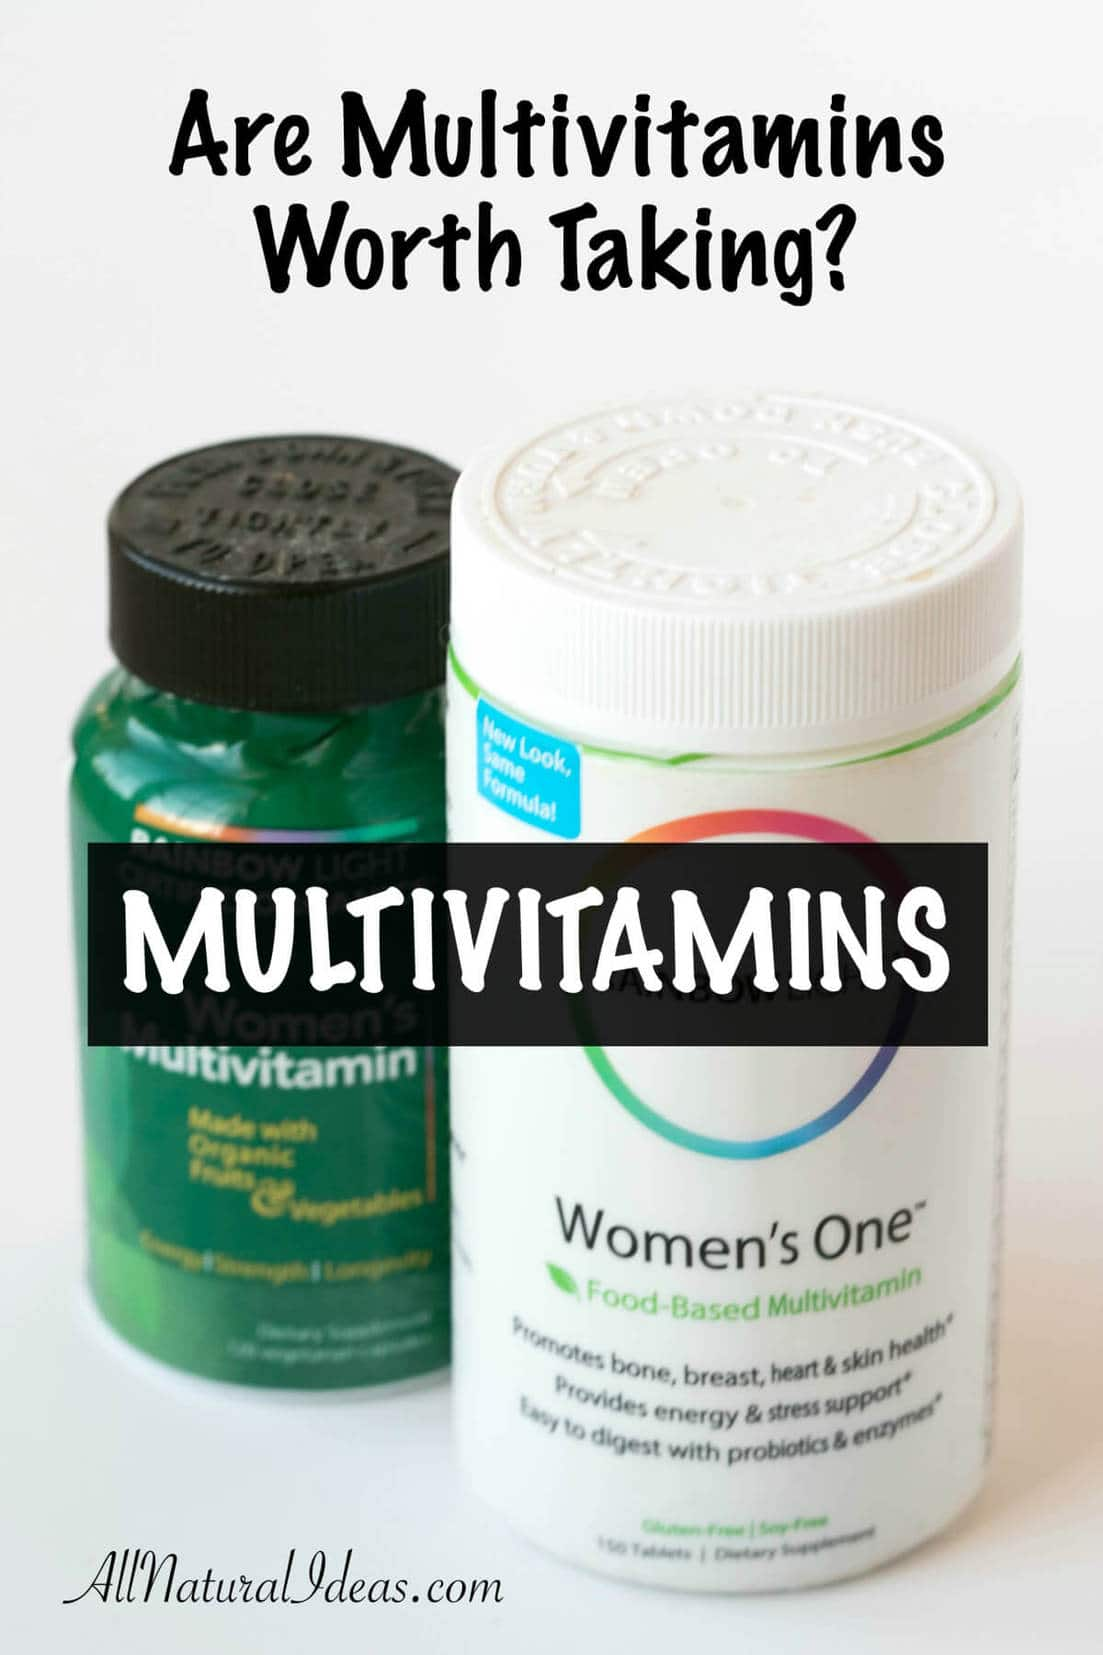 What are the daily multivitamin supplements benefits? Should you be taking them or are they all marketing hype? Let's look at the truth behind multivitamins.